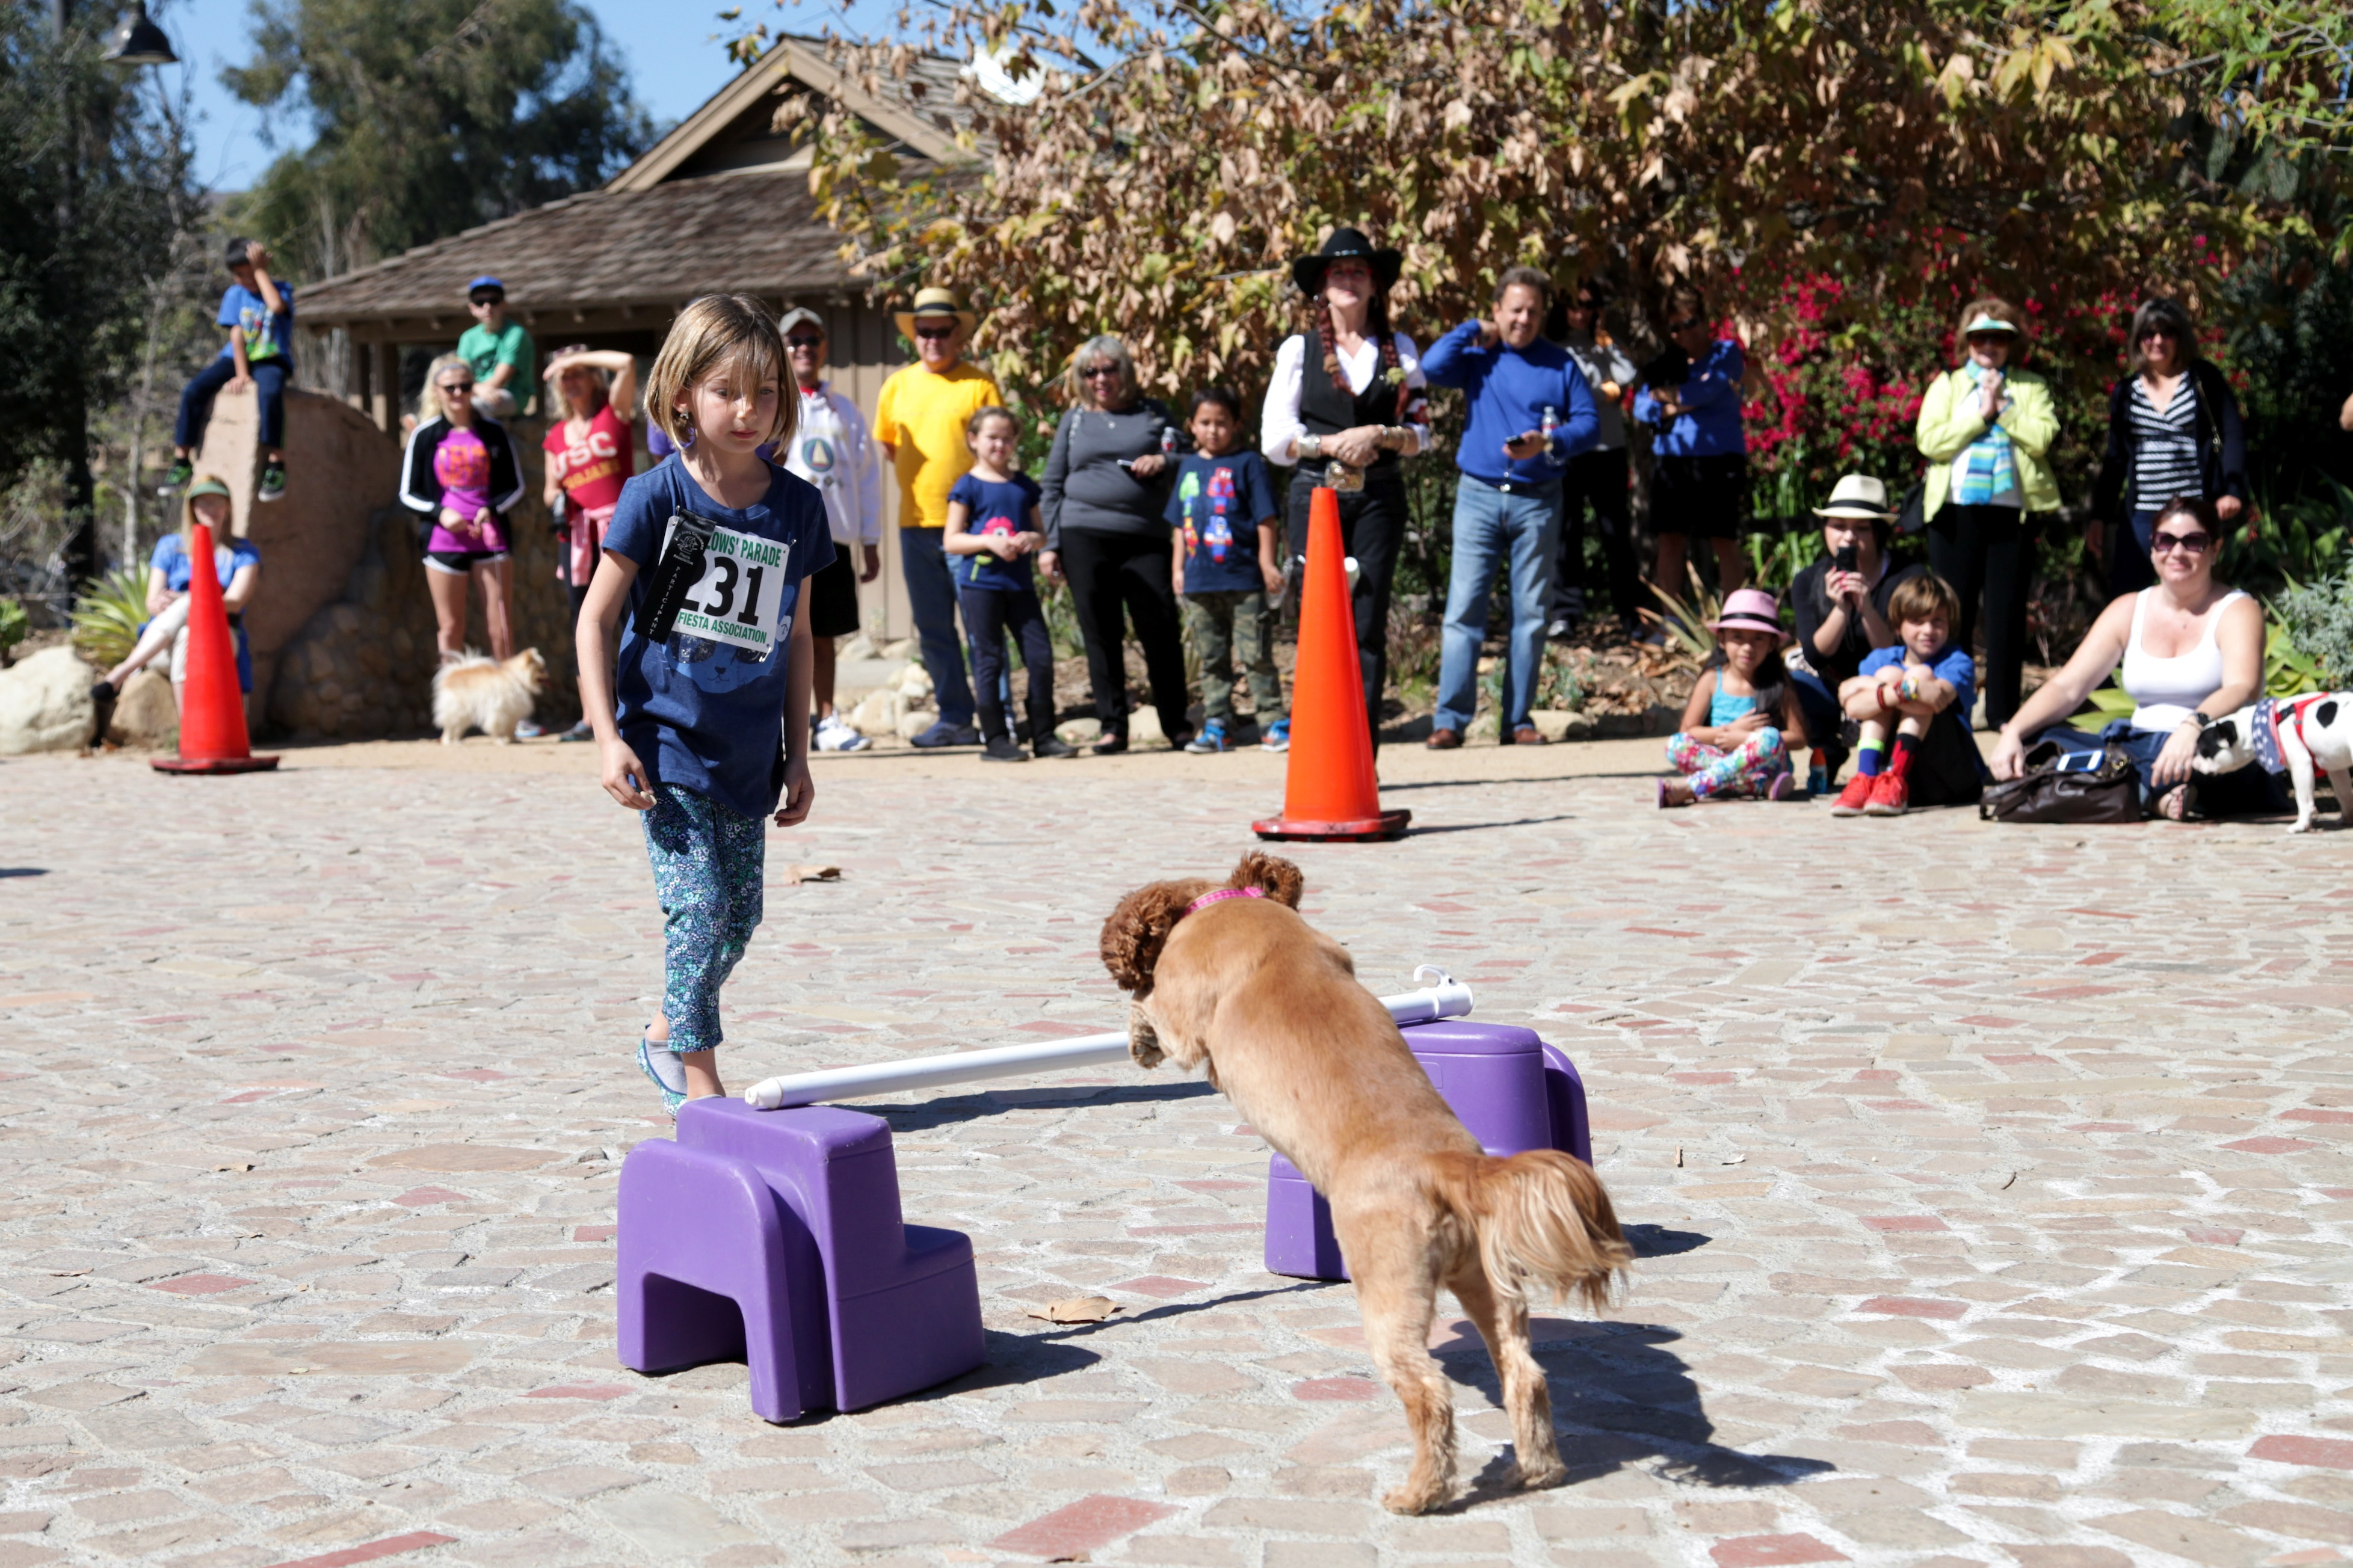 Ava Rowan watches as her dog, Sophie, performs a trick for the crowd. Photo by Brian Park